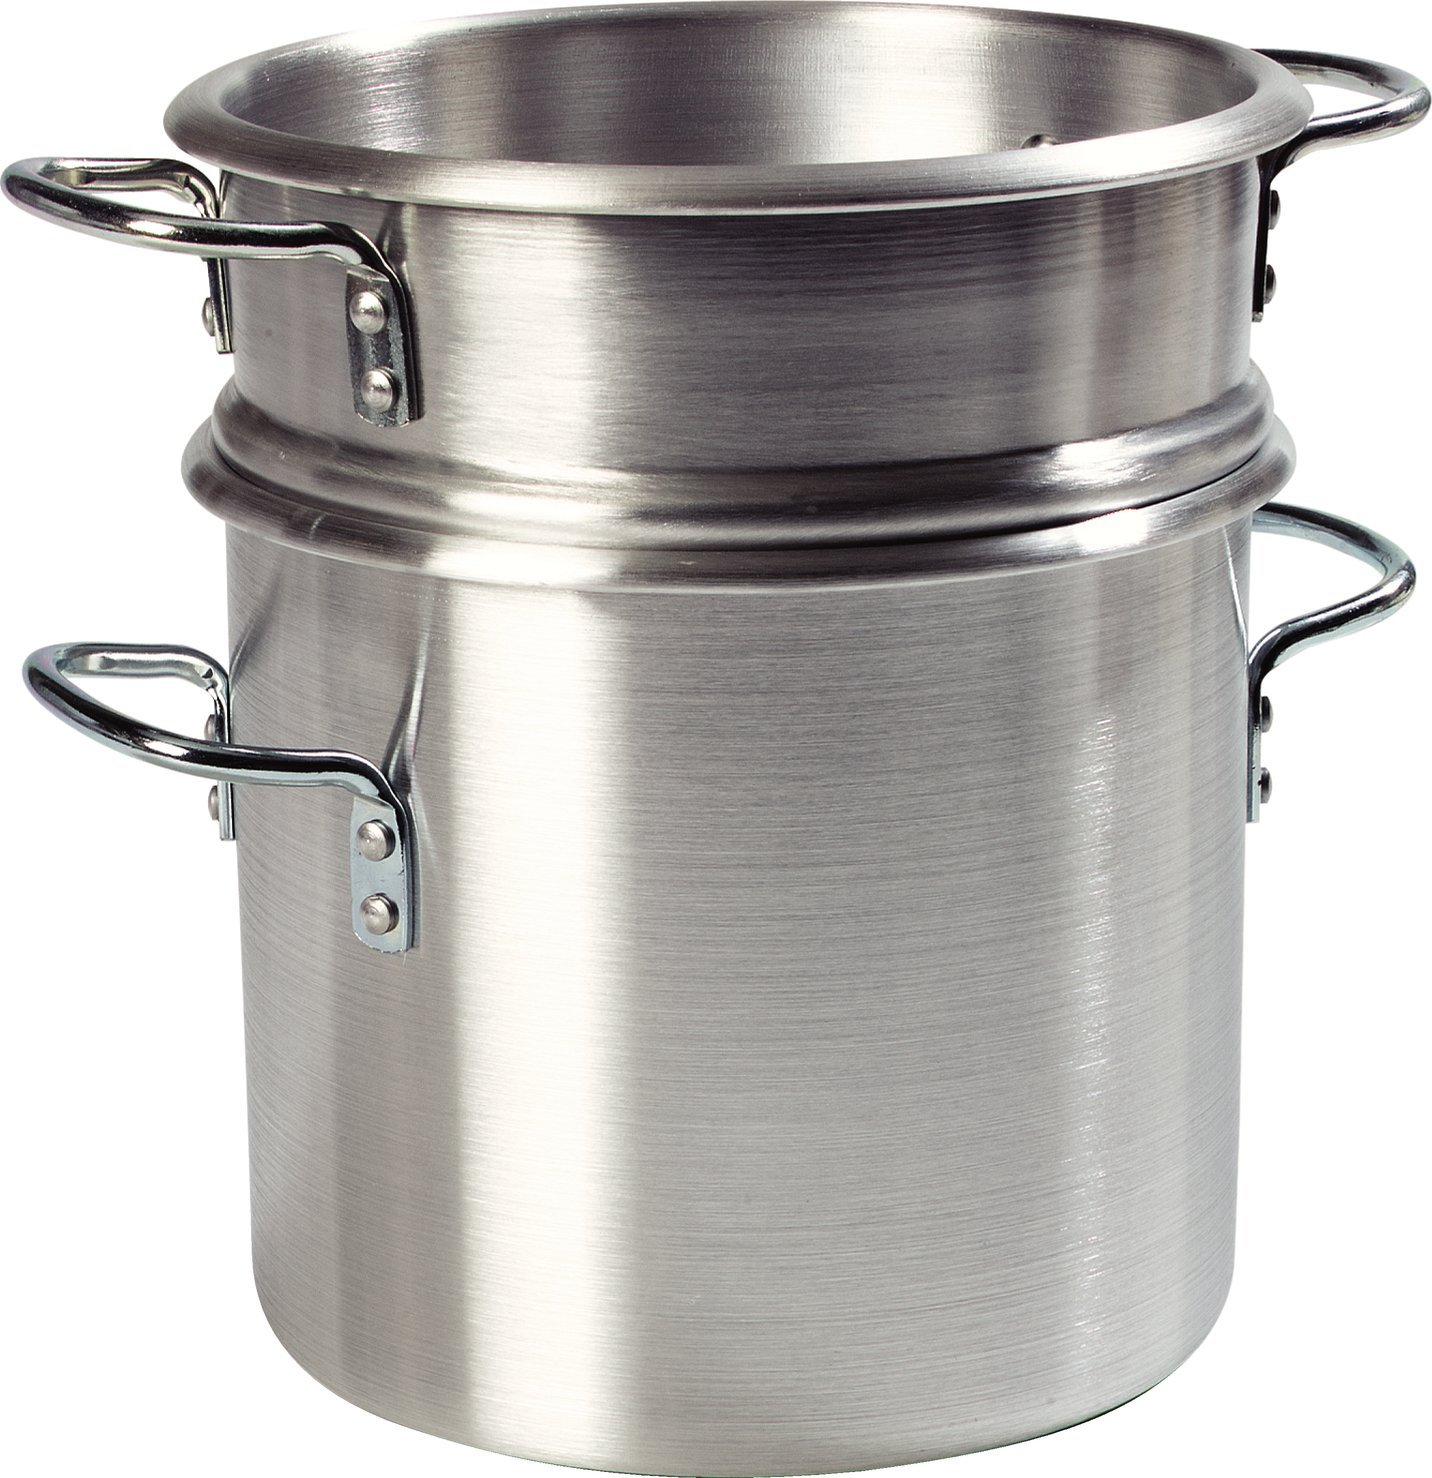 Carlisle 60934 Professional Aluminum Double Boiler with Insert, 20 Quart by Carlisle